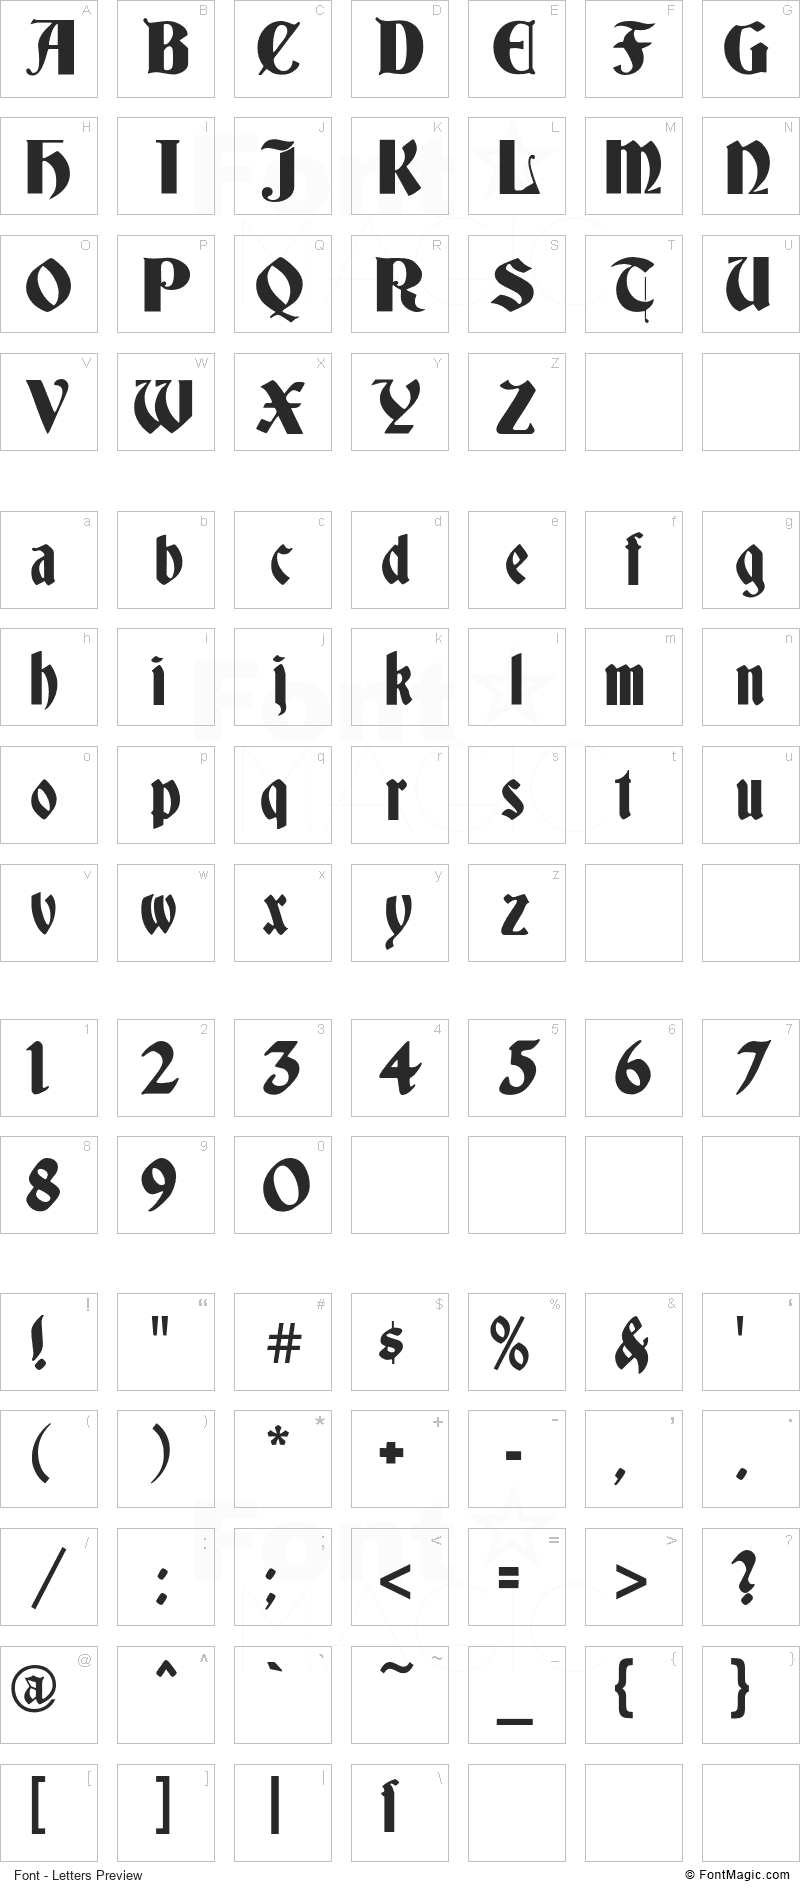 Germania Font - All Latters Preview Chart